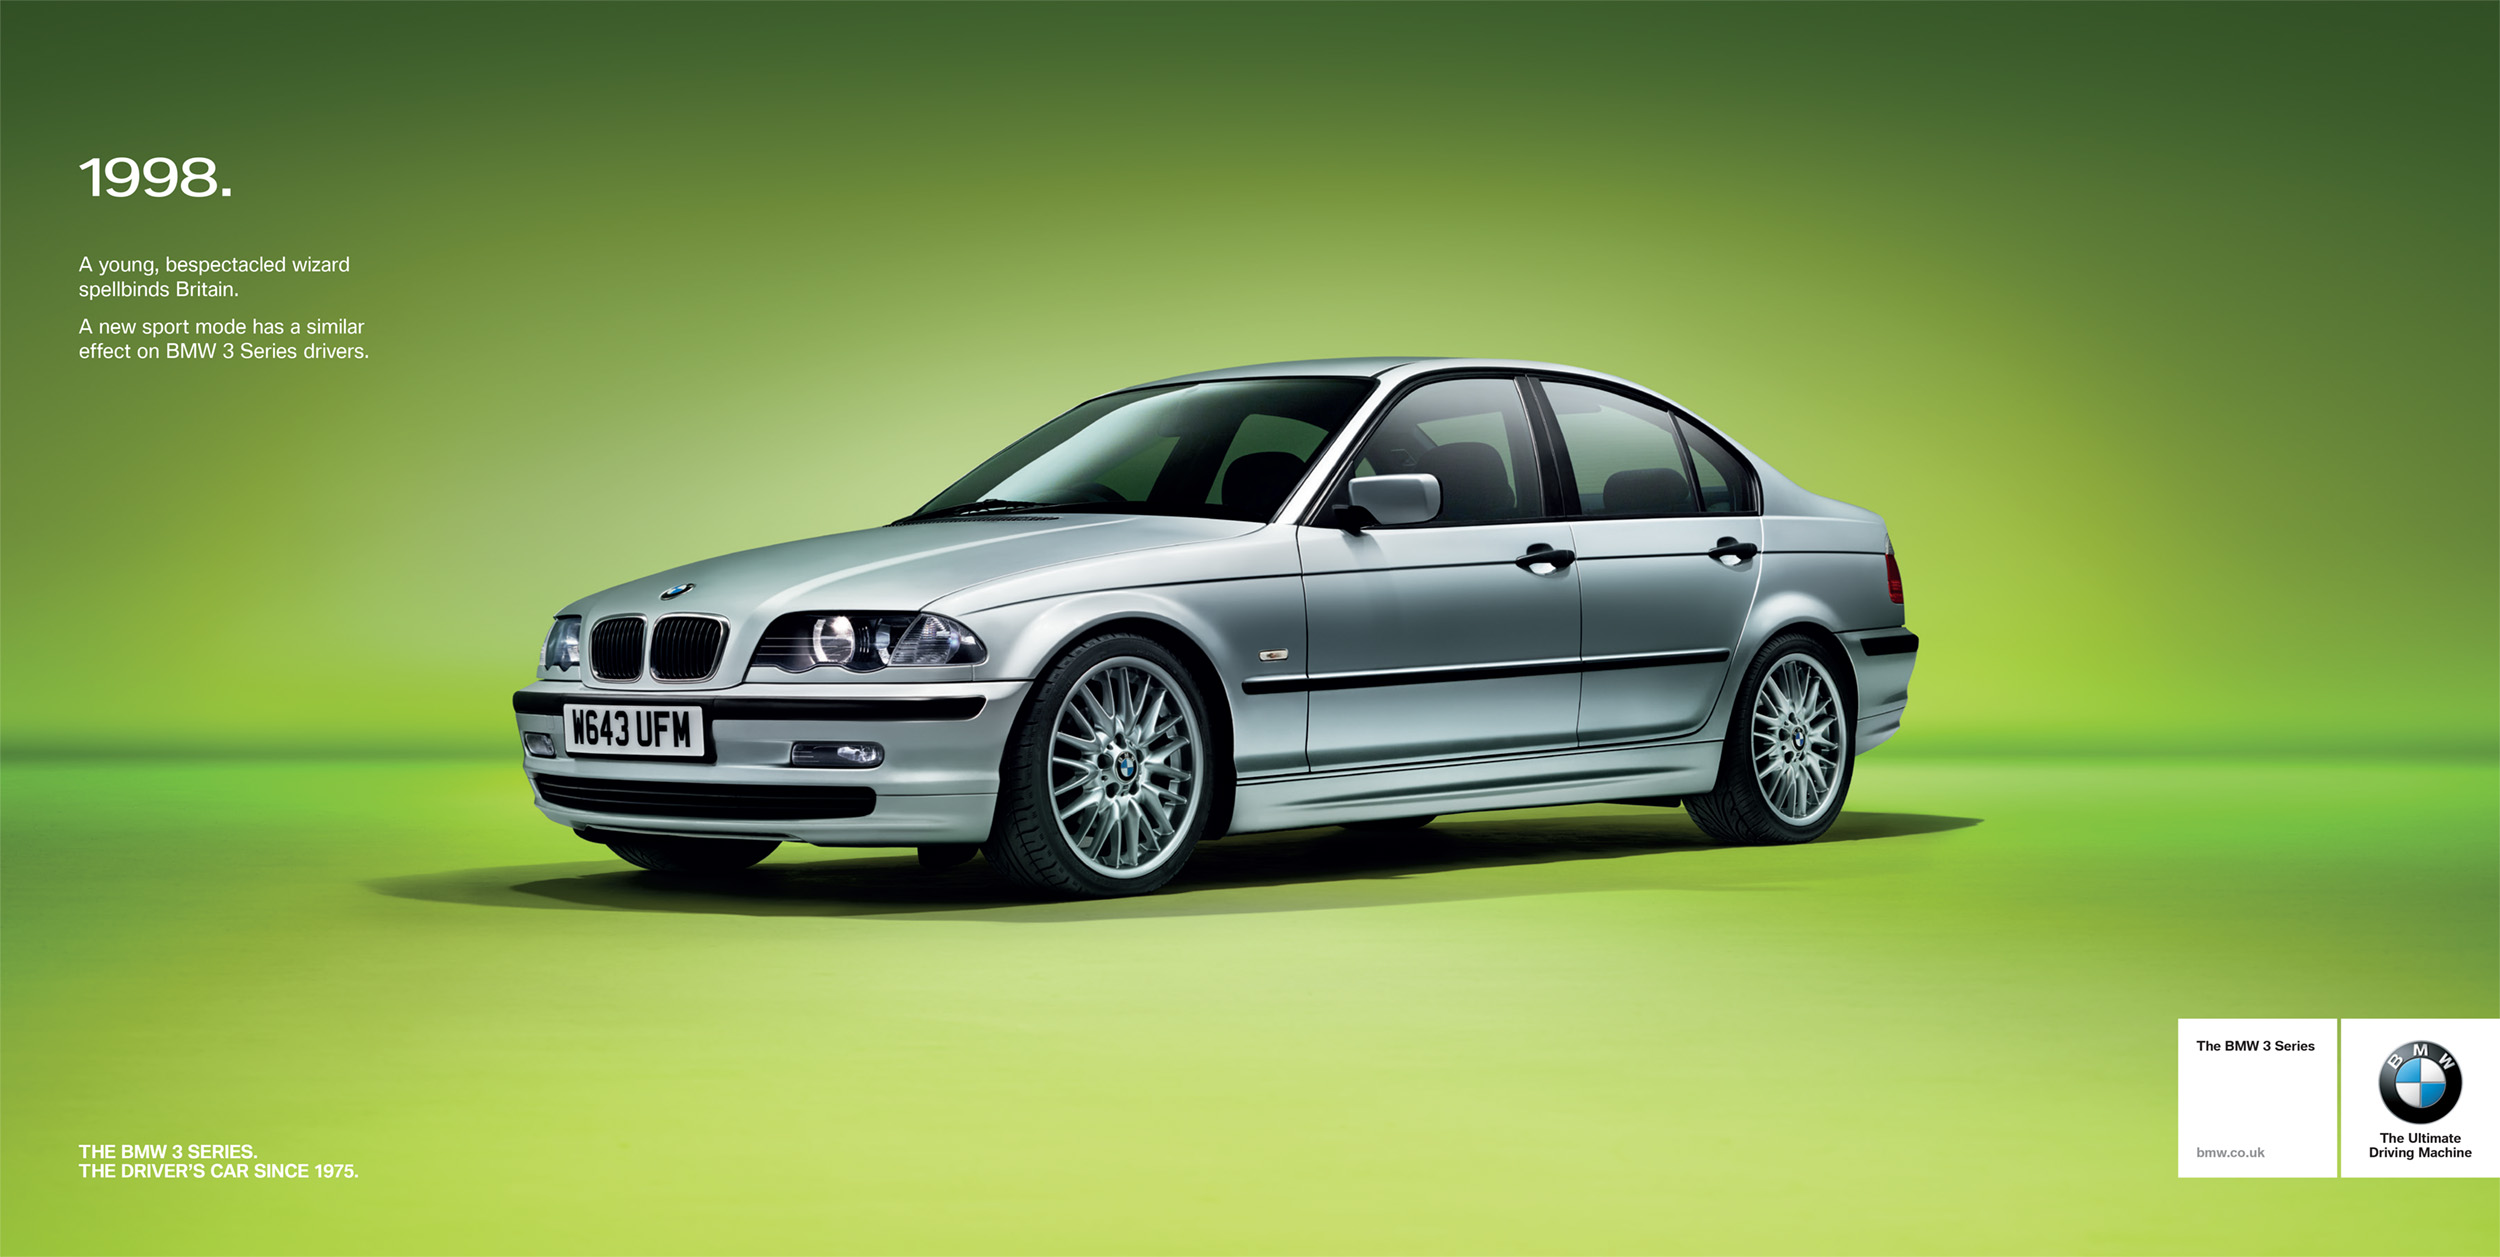 Mark Bramley BMW 3 Series Campaign